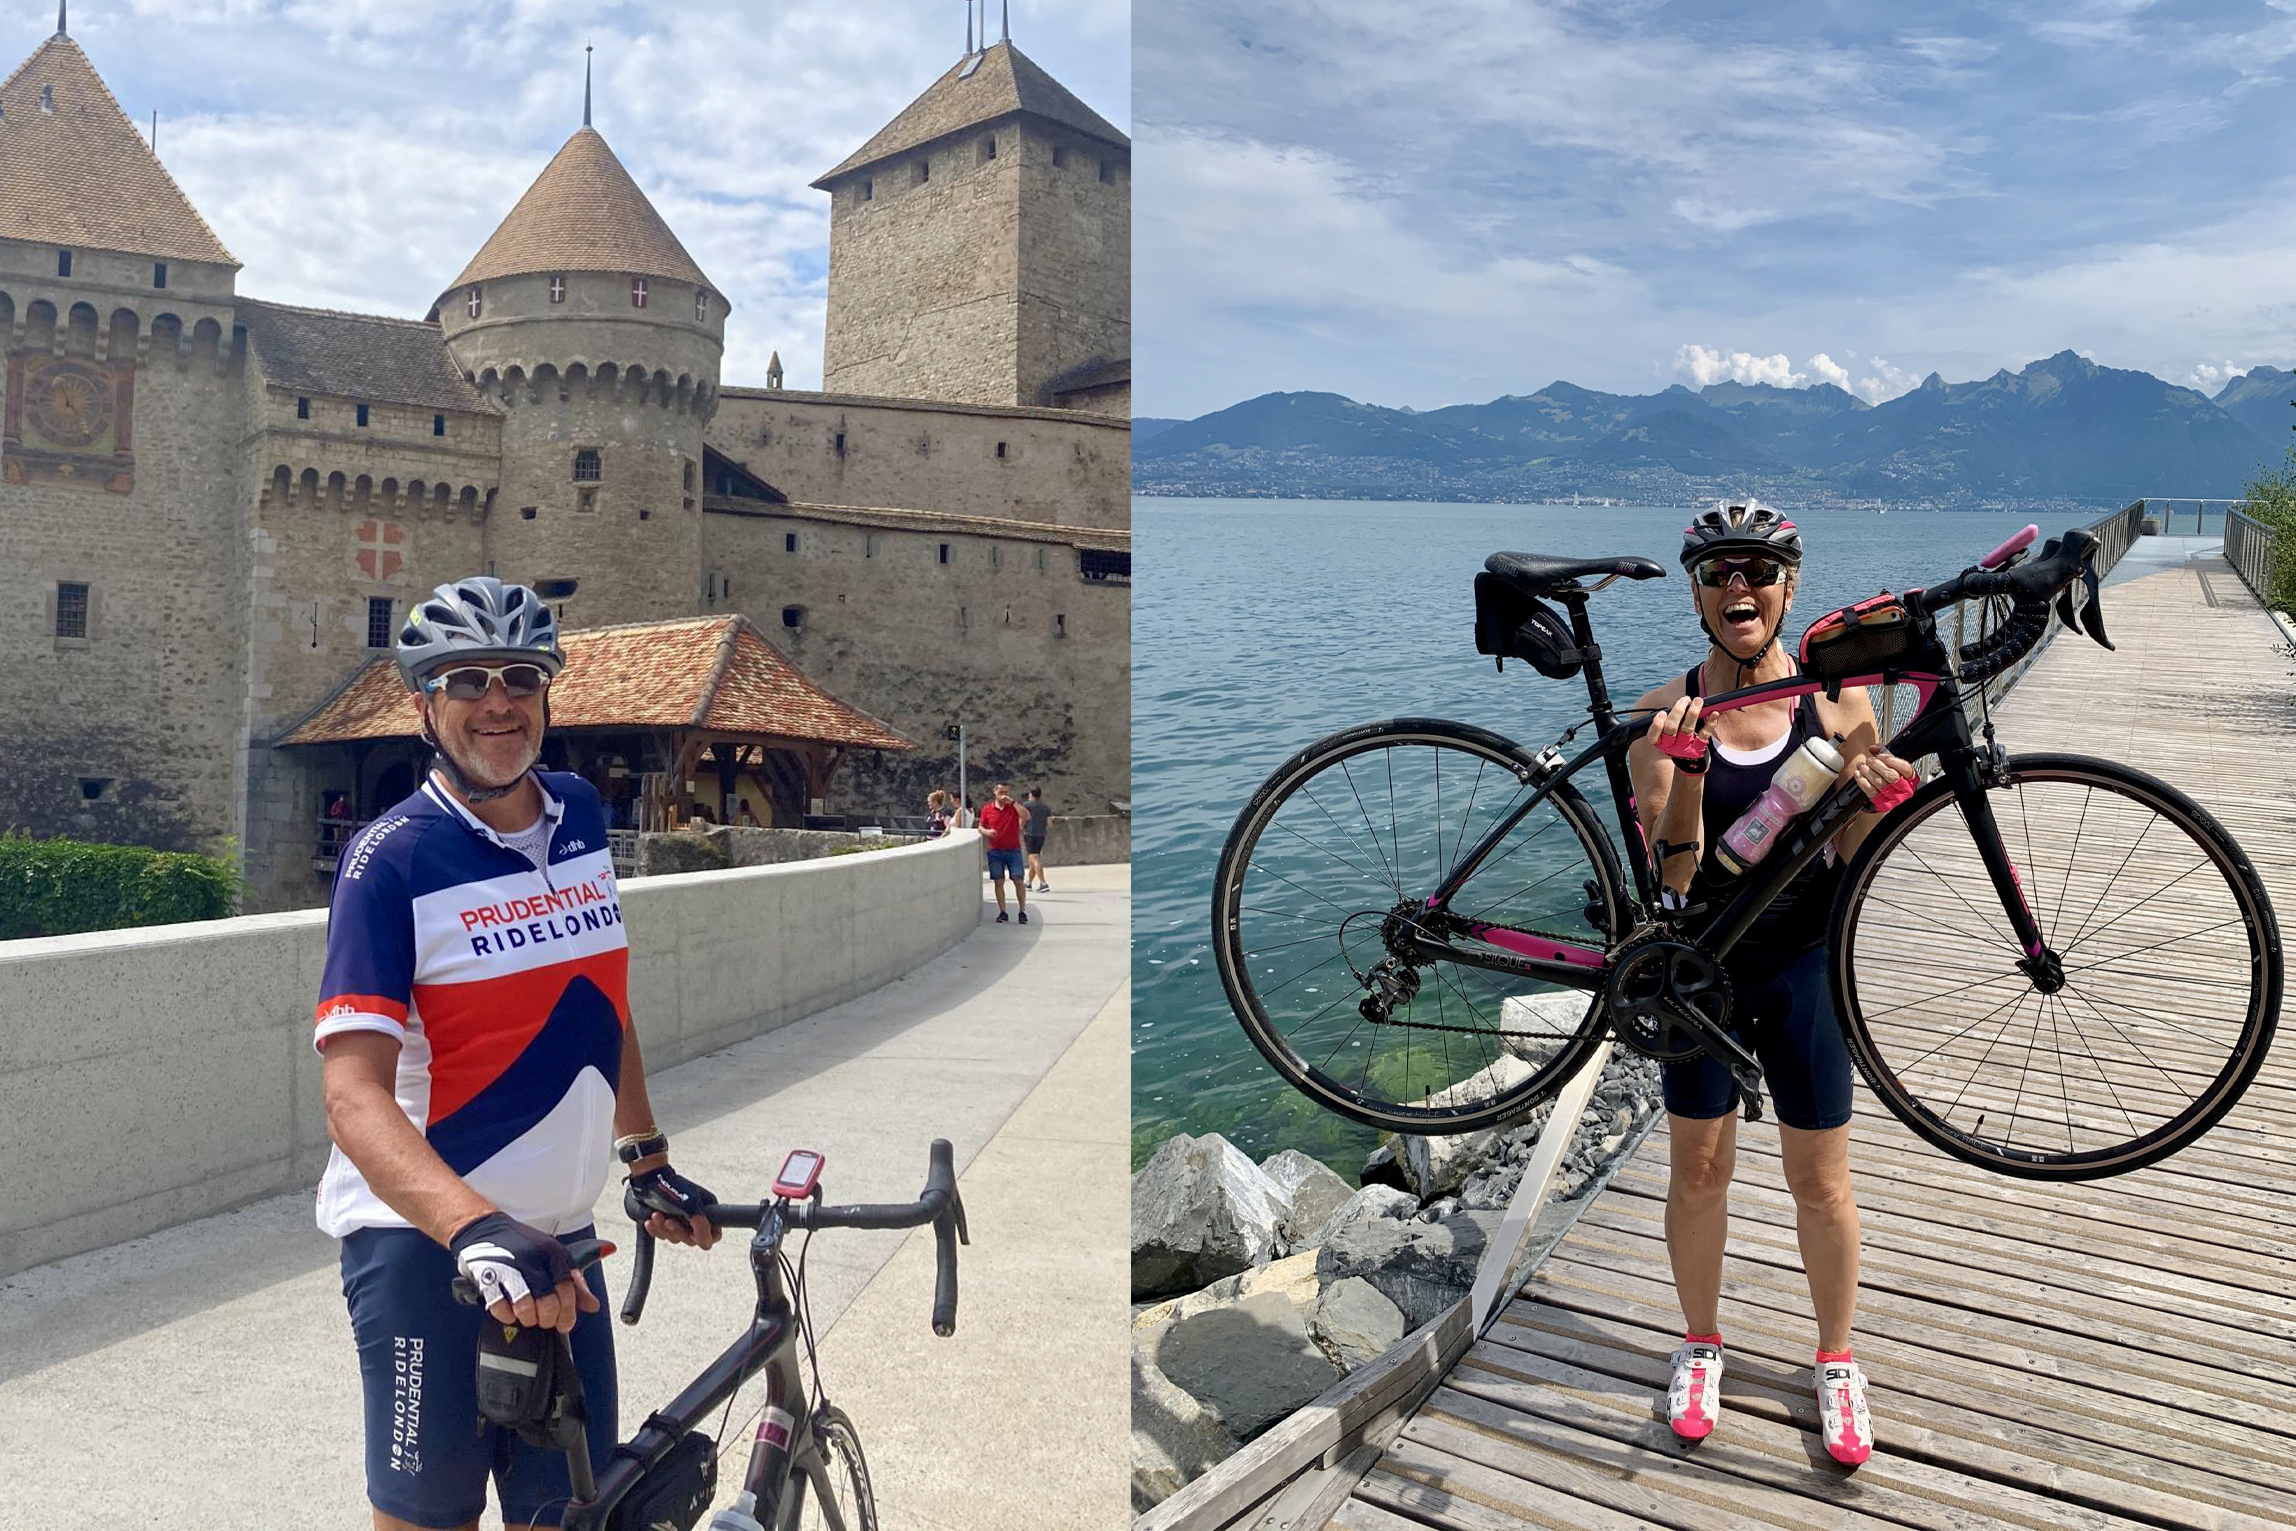 Meet the agents who cycled around Lake Geneva for charity